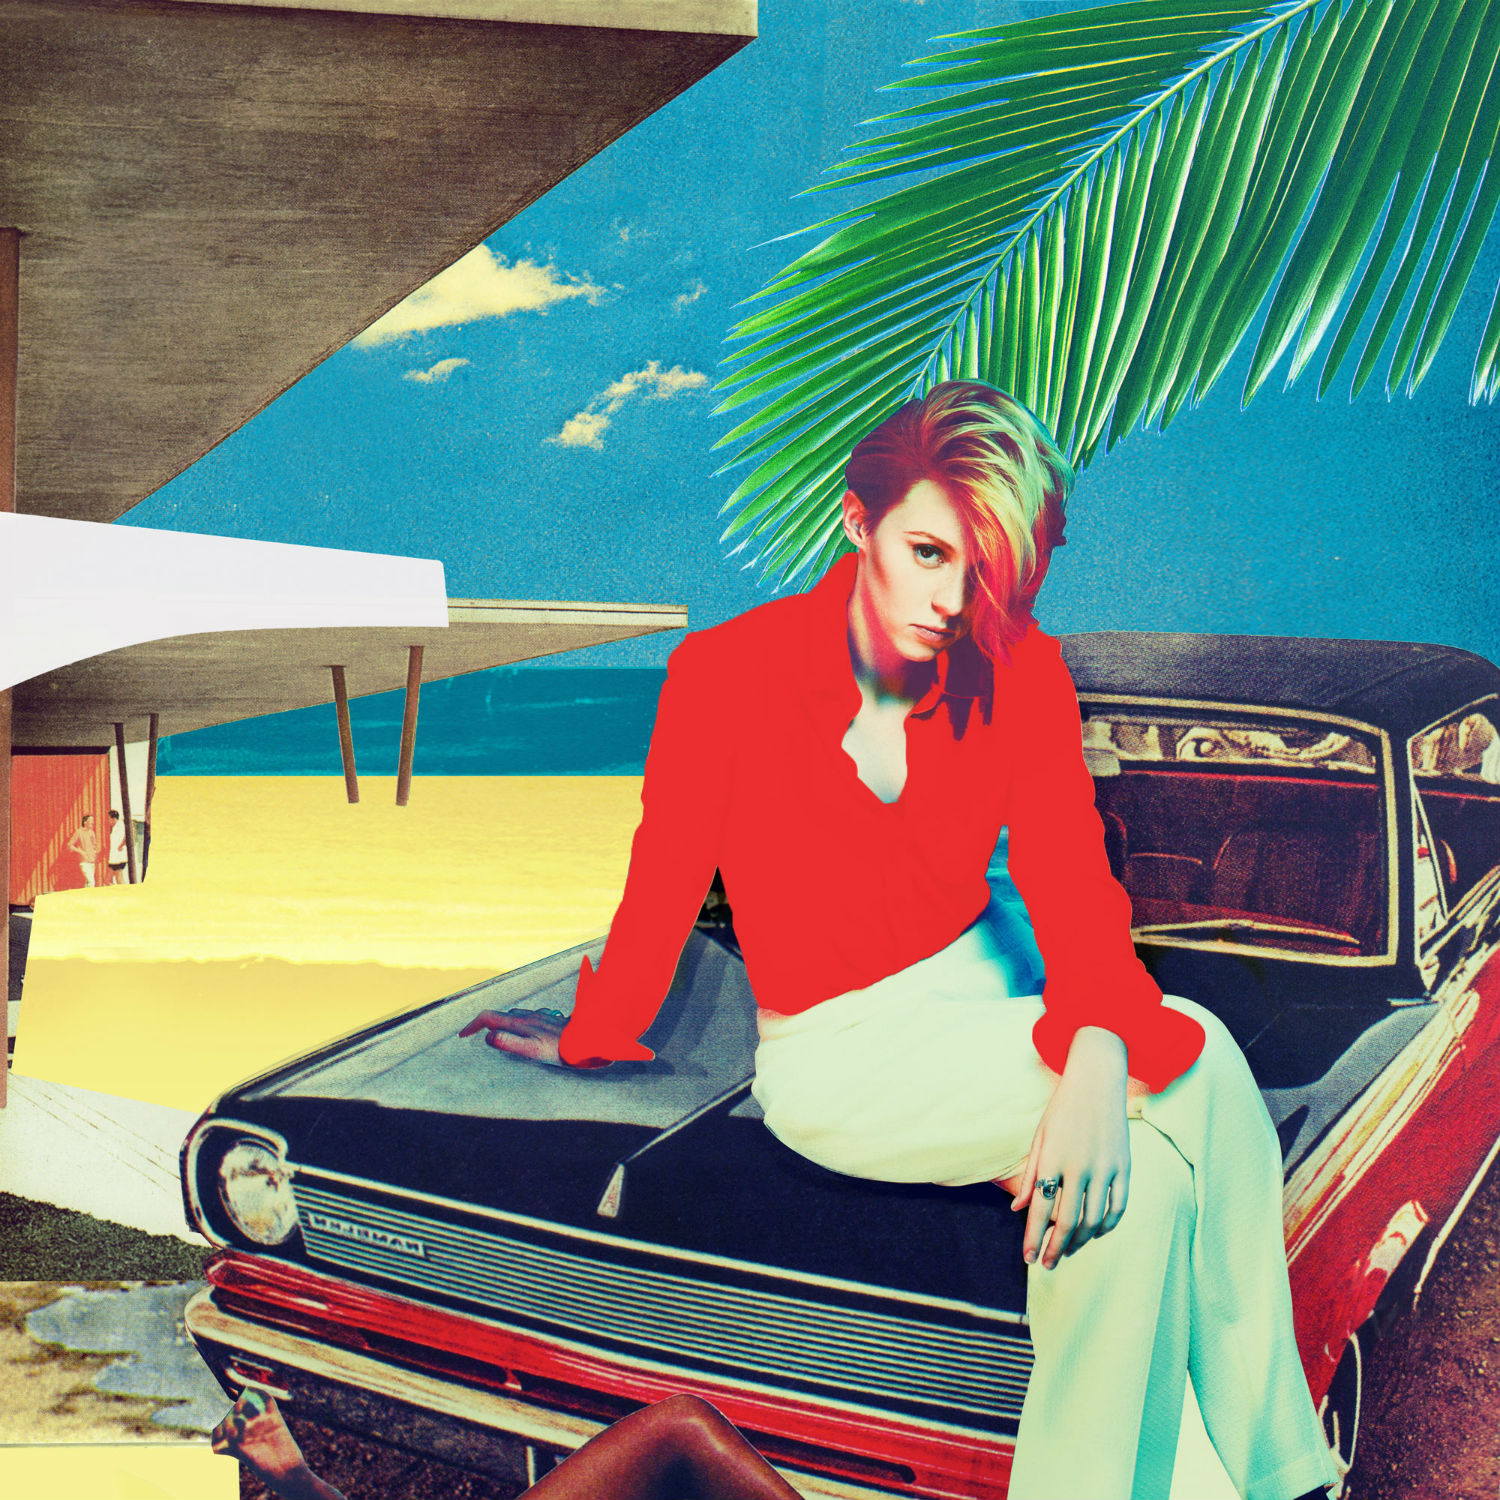 la roux david bowie 70s colours album